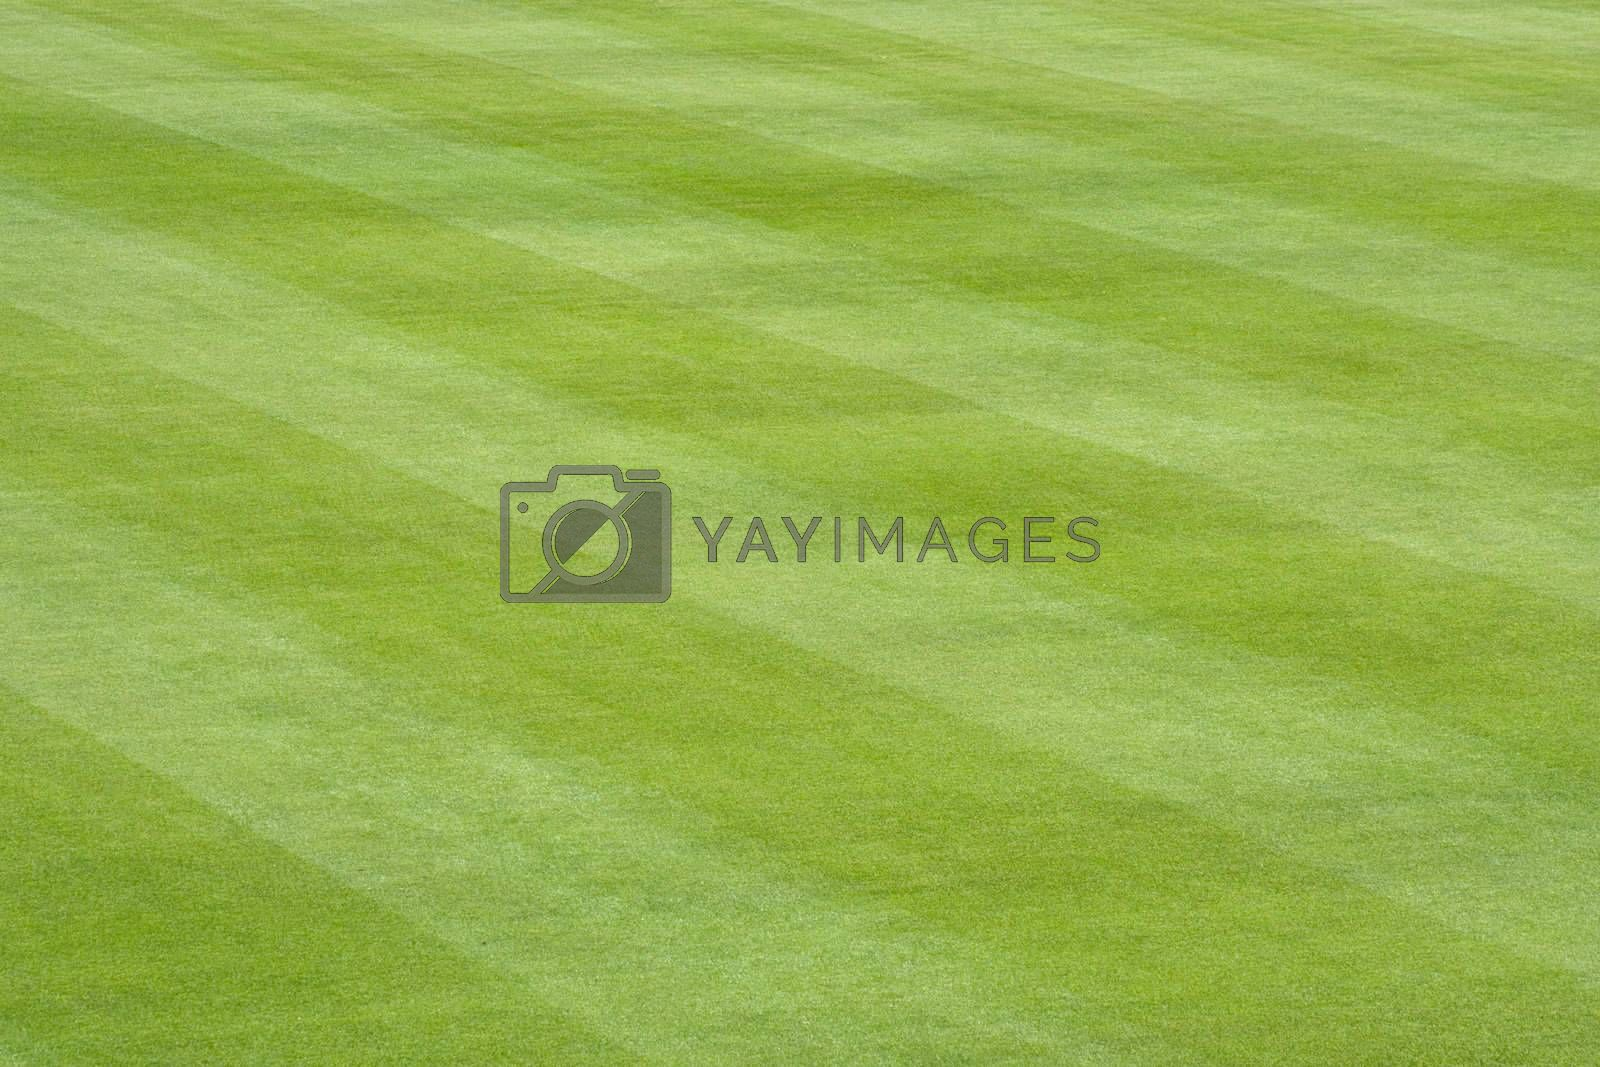 The freshly cut striped grass of a baseball field.